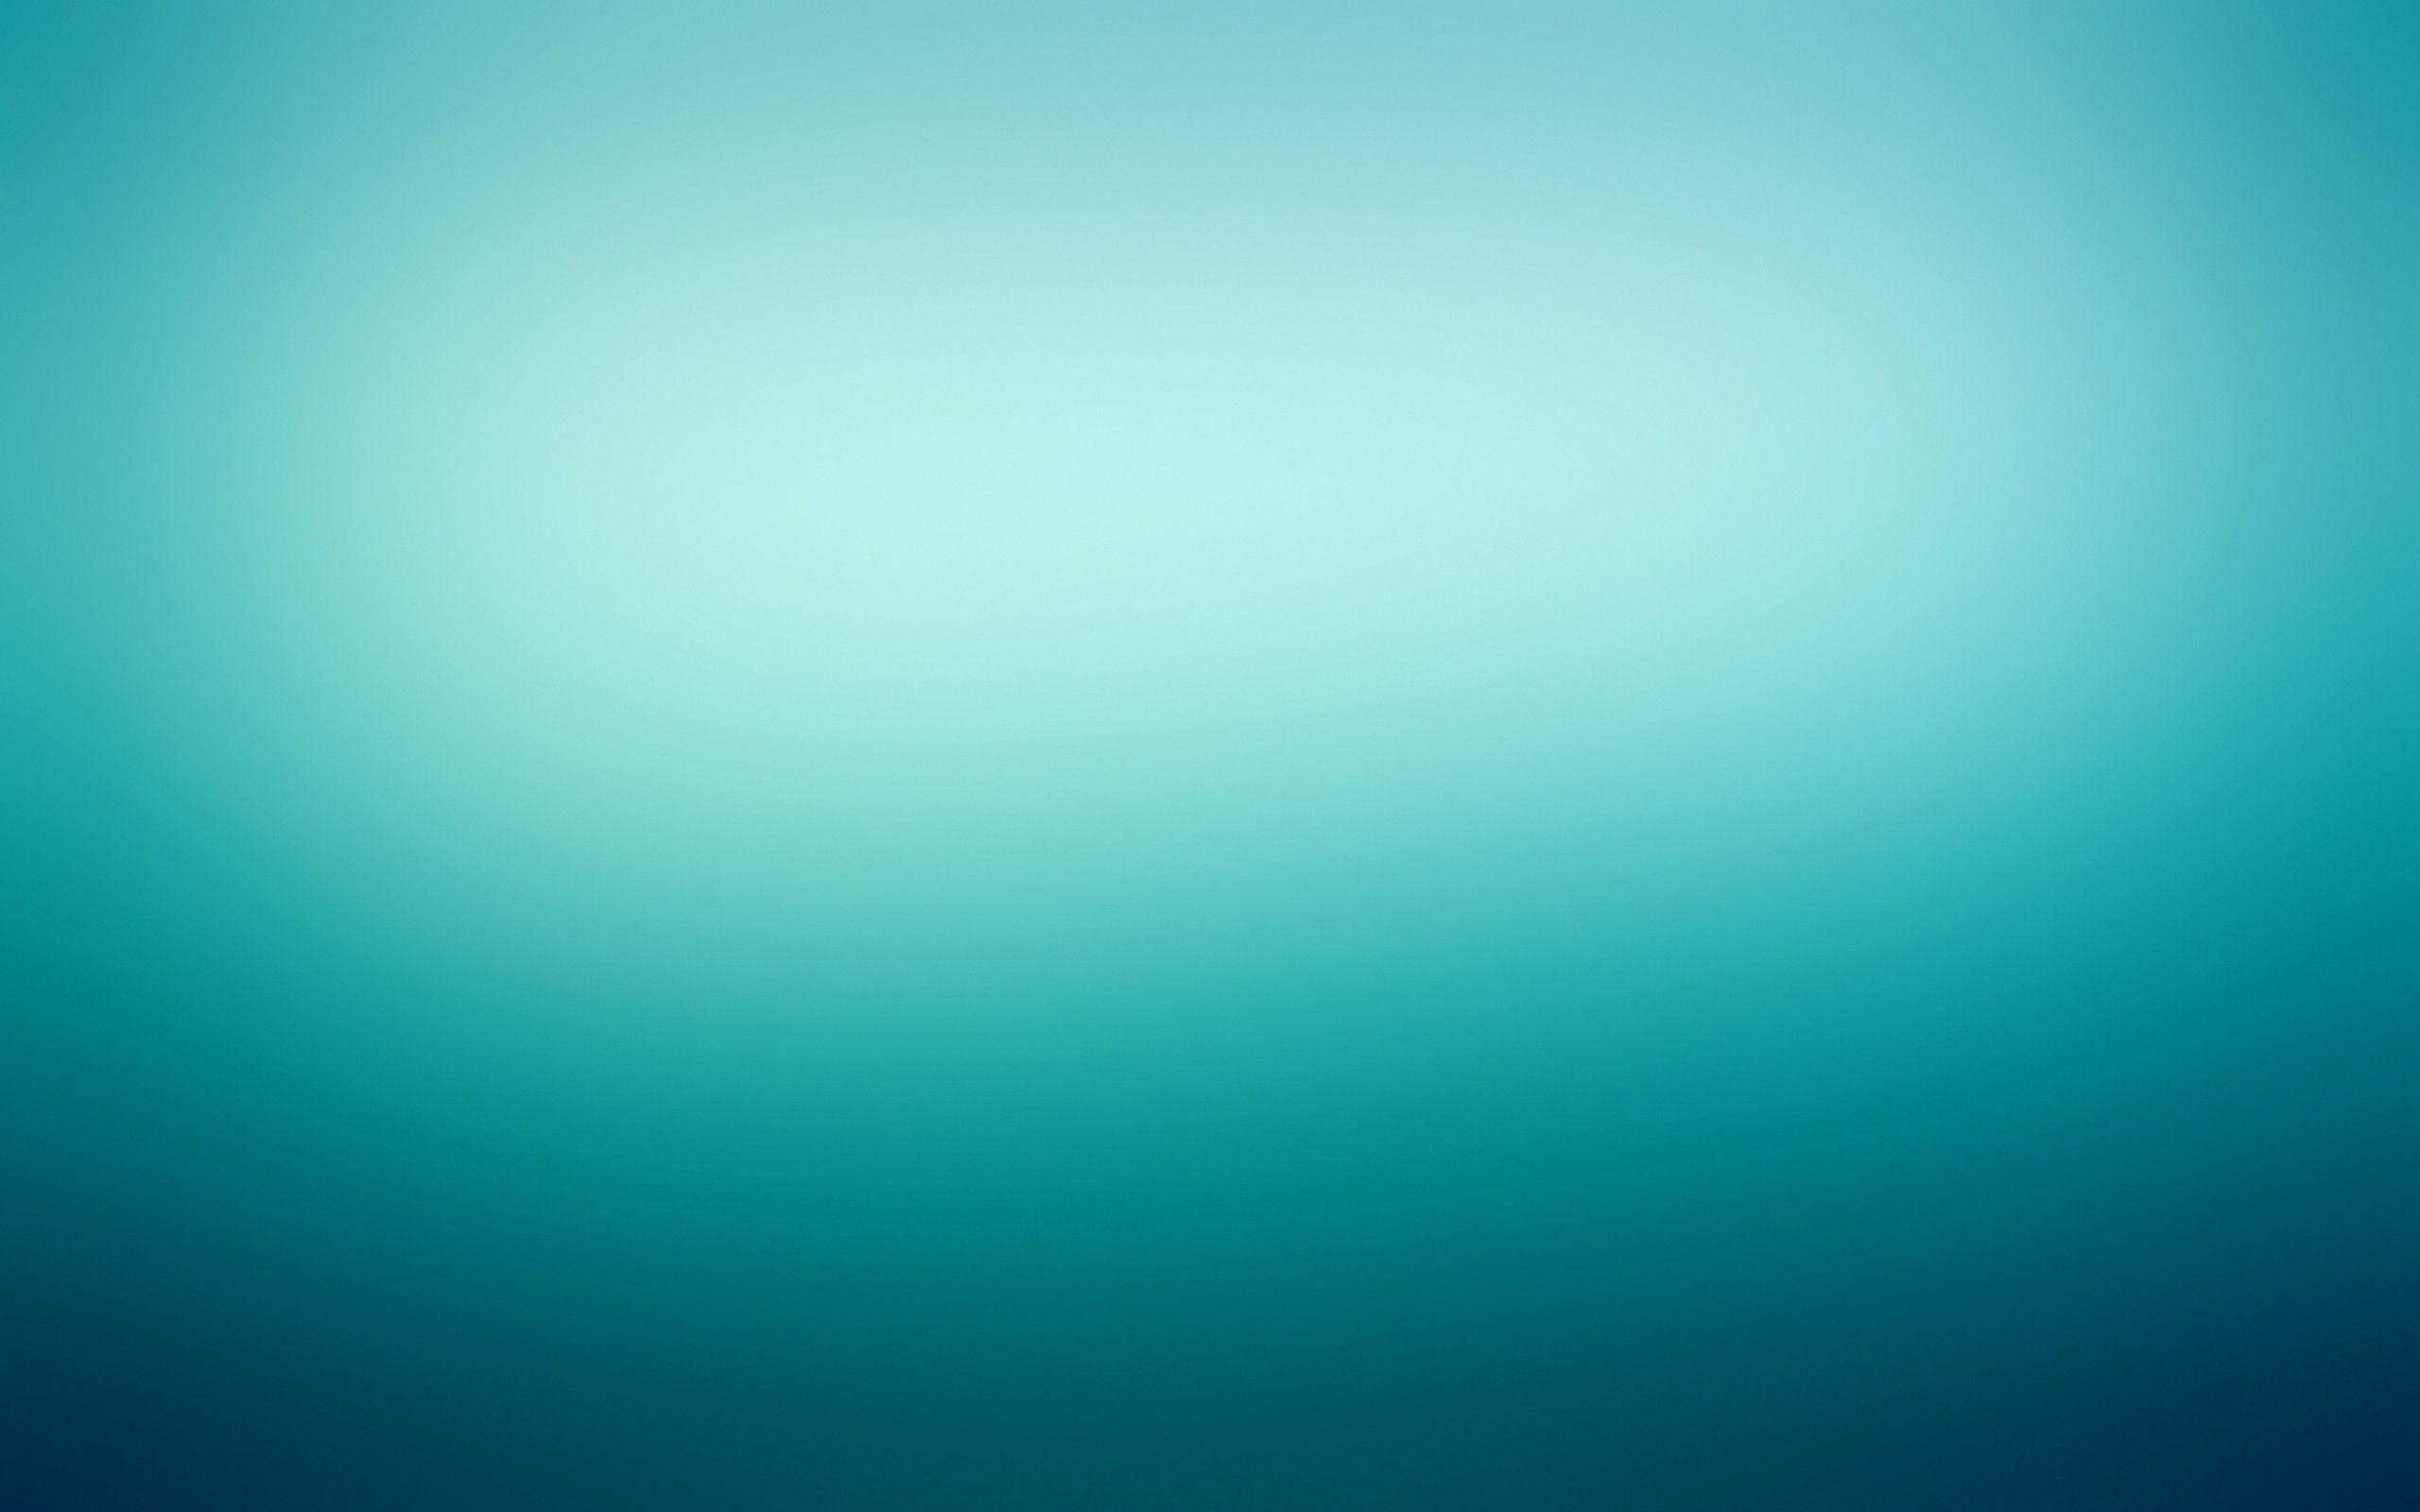 turquoise abstract computer wallpaper - photo #22